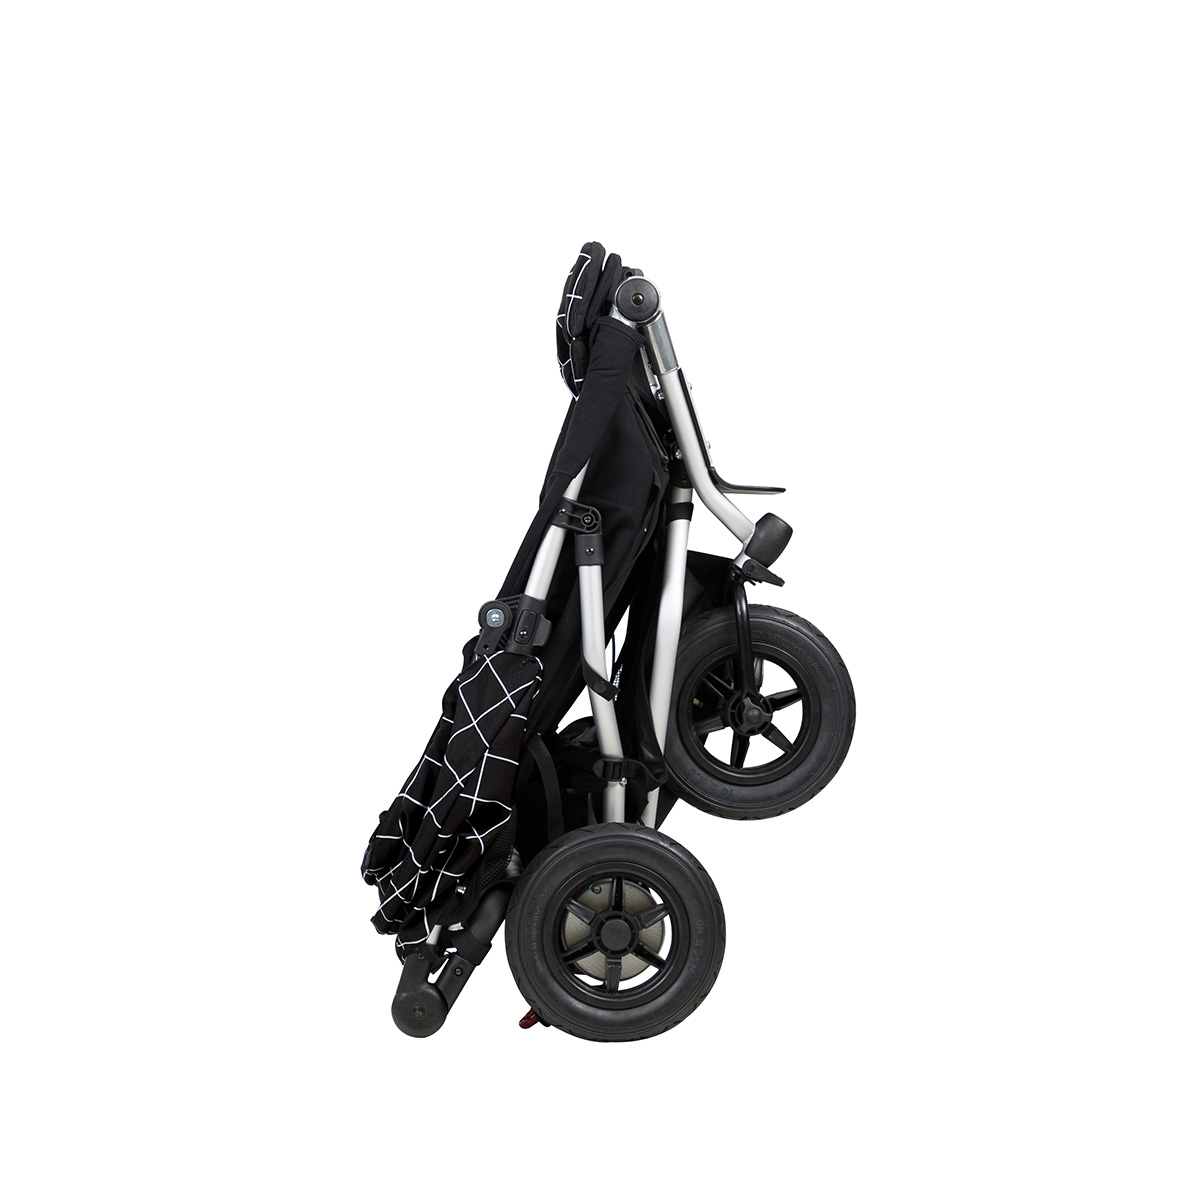 Poussette double Duet V3 Mountain Buggy pliage compact